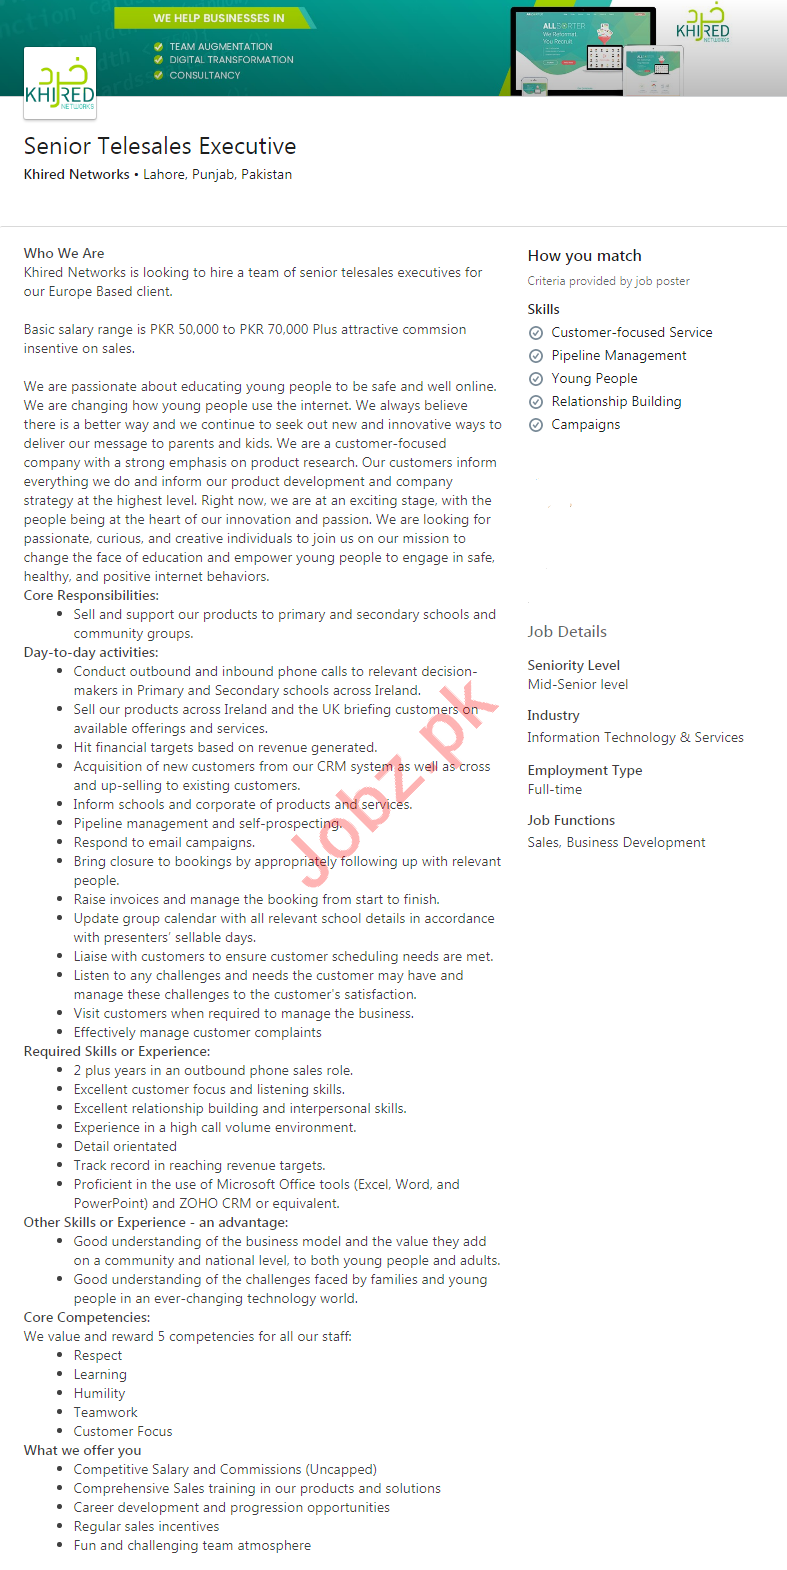 Khired Networks Lahore Jobs 2020 Senior Telesales Executive